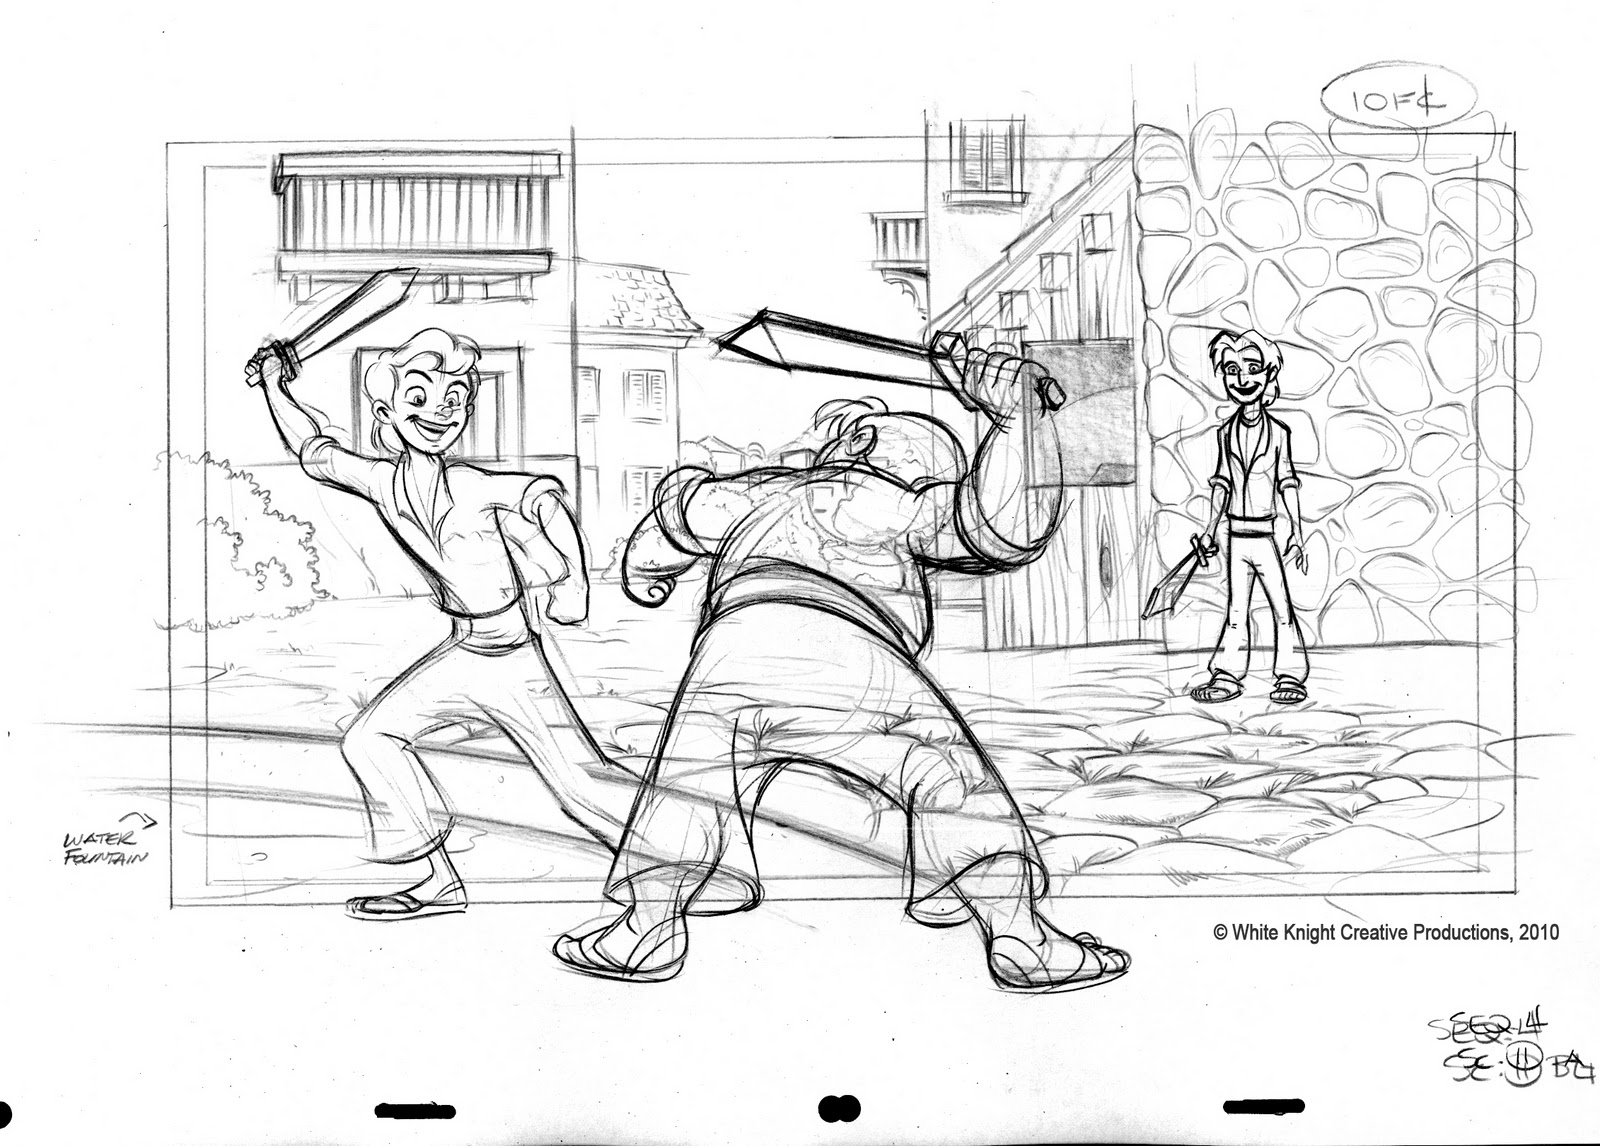 These Are Examples Of The Layout Work Done By Golden Street Animation Productions In 2010 On A Variety Shows